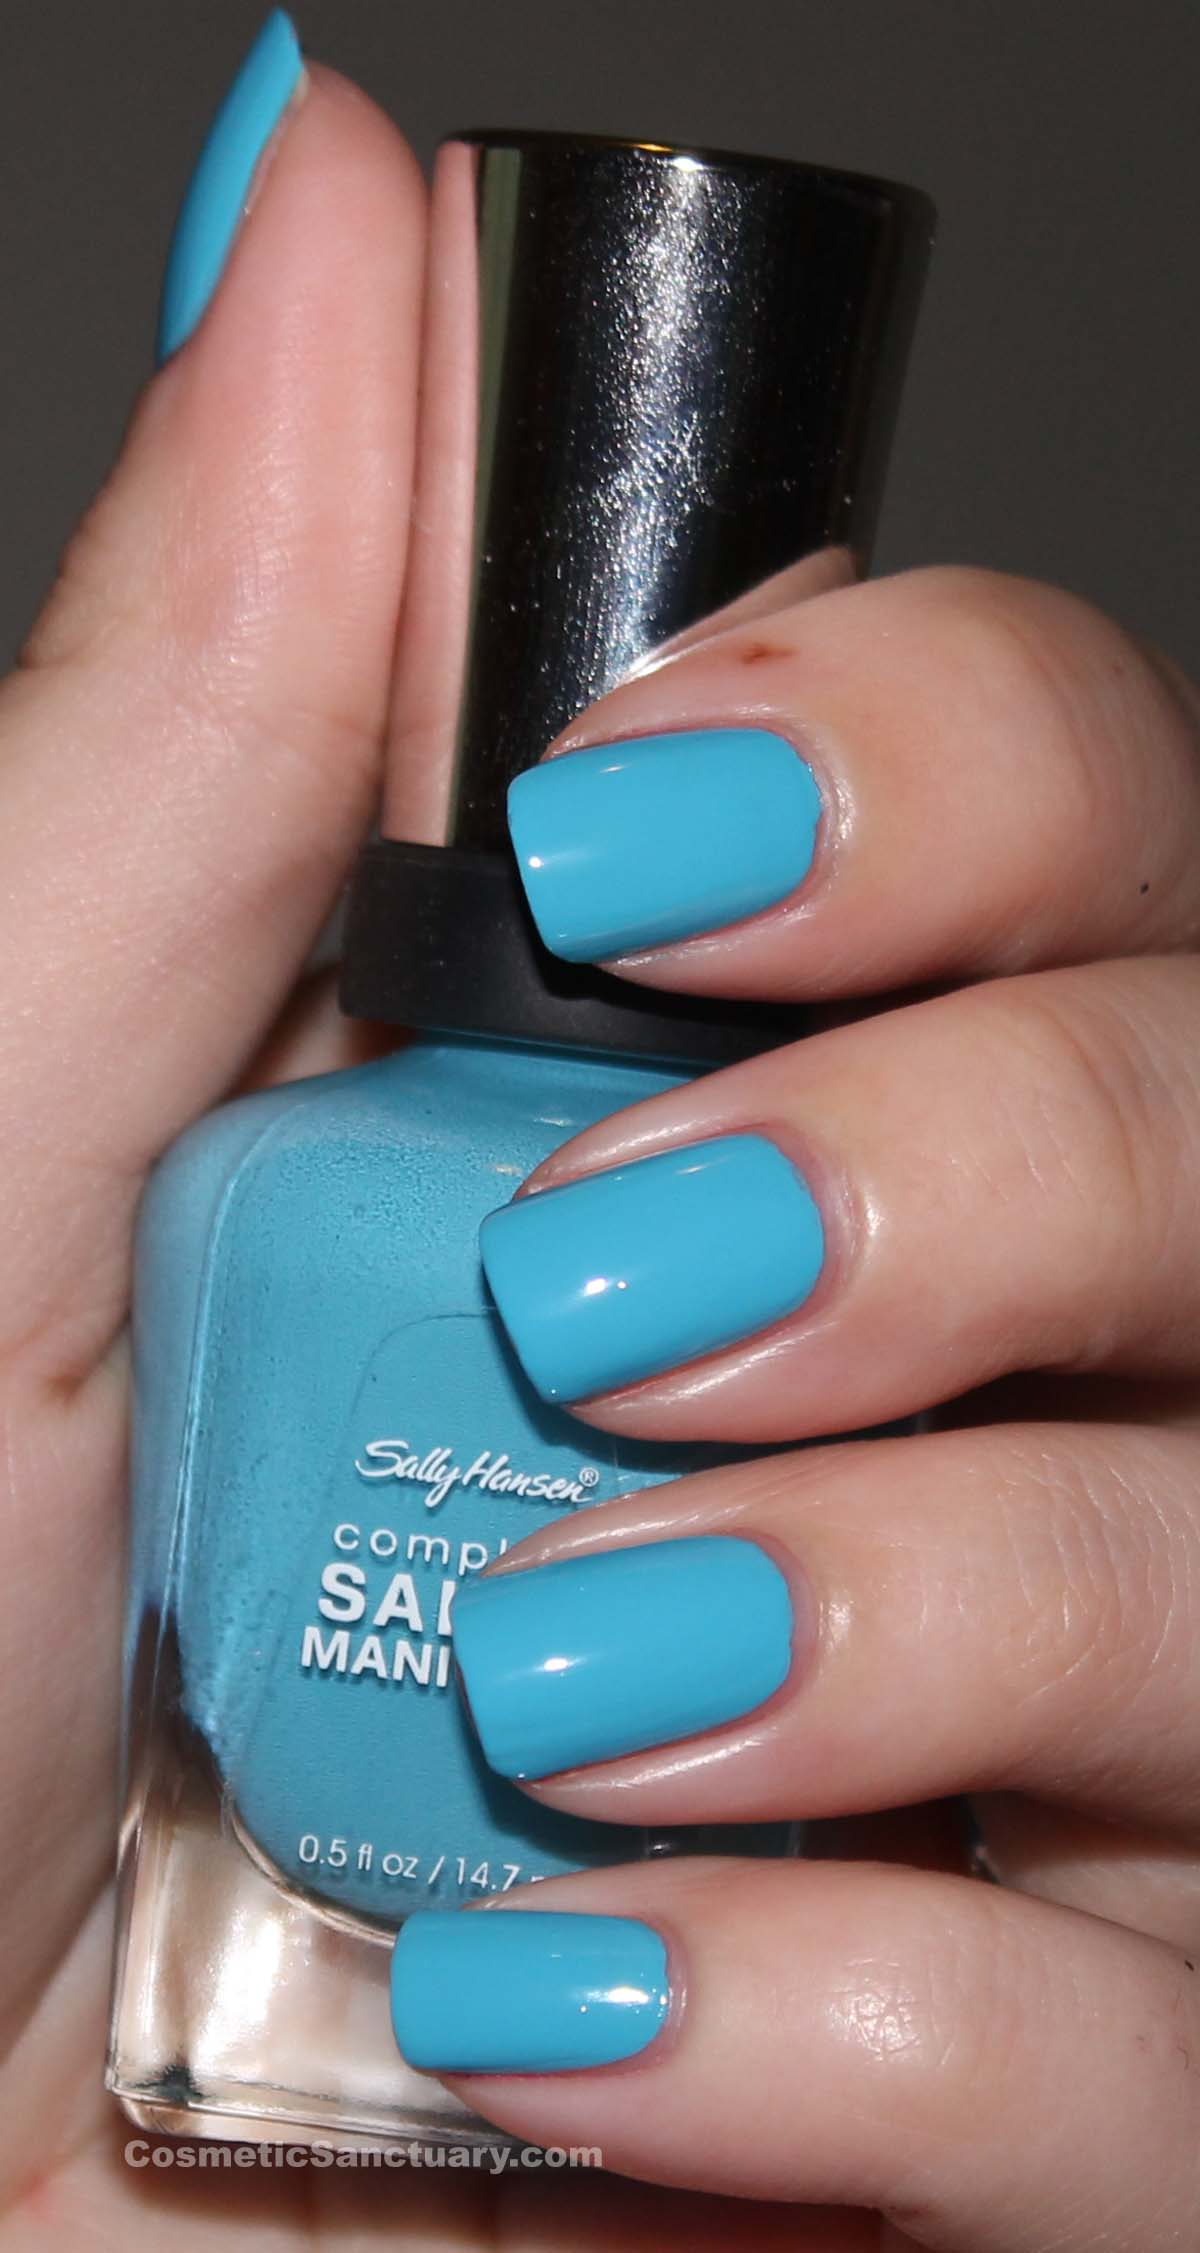 Sally hansen complete salon manicure for tracy reese in for Salon manicure